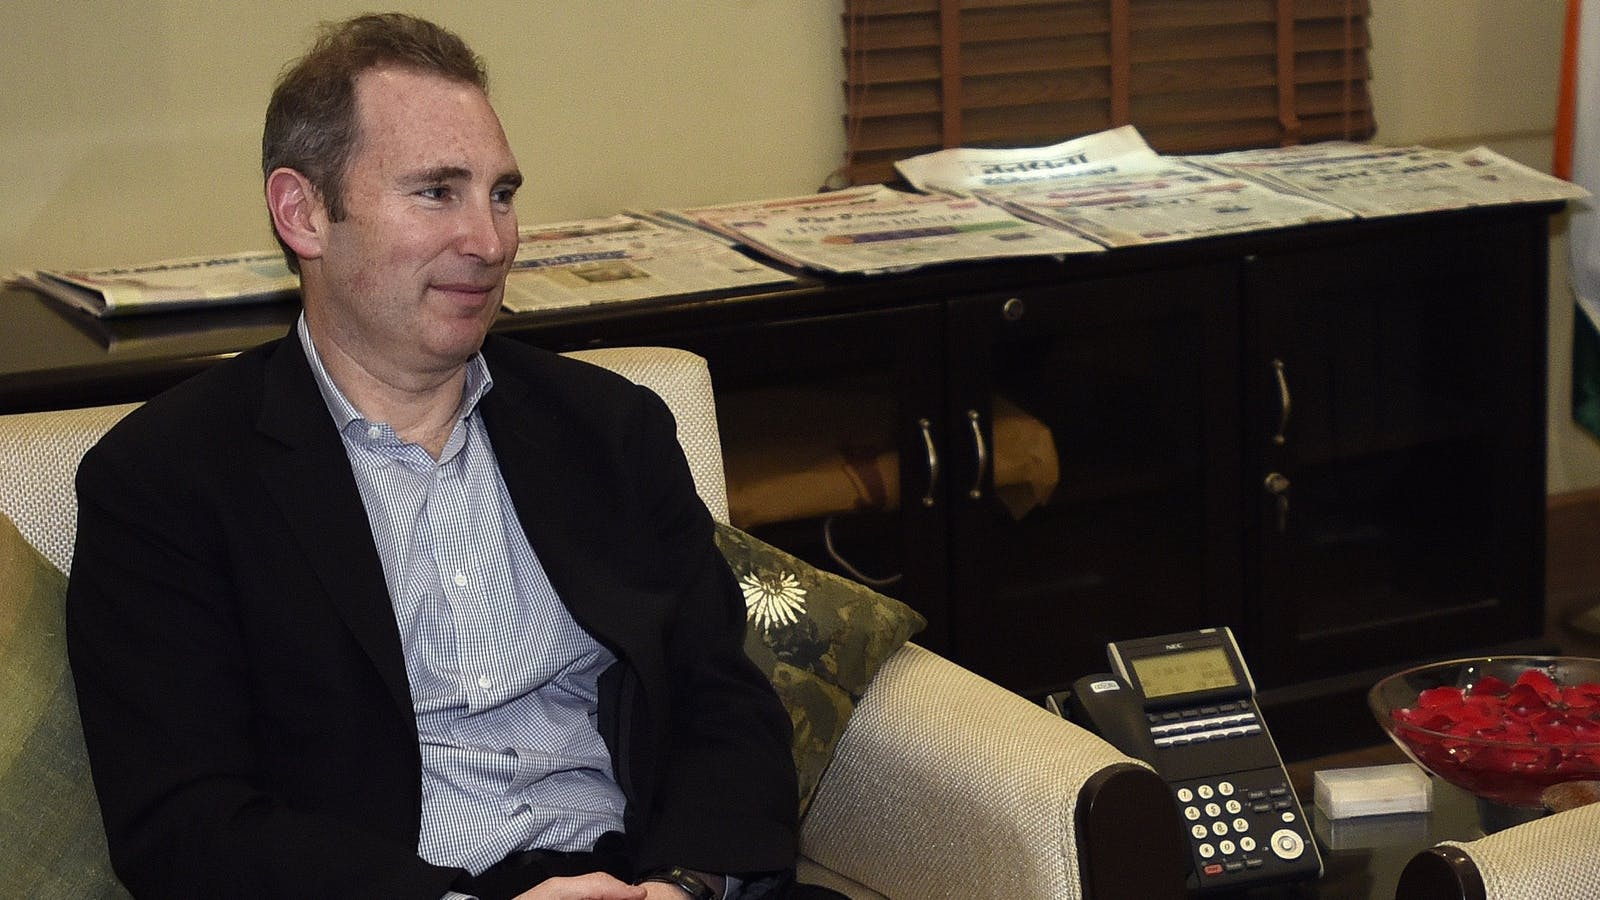 AWS CEO Andy Jassy. Photo by AP.